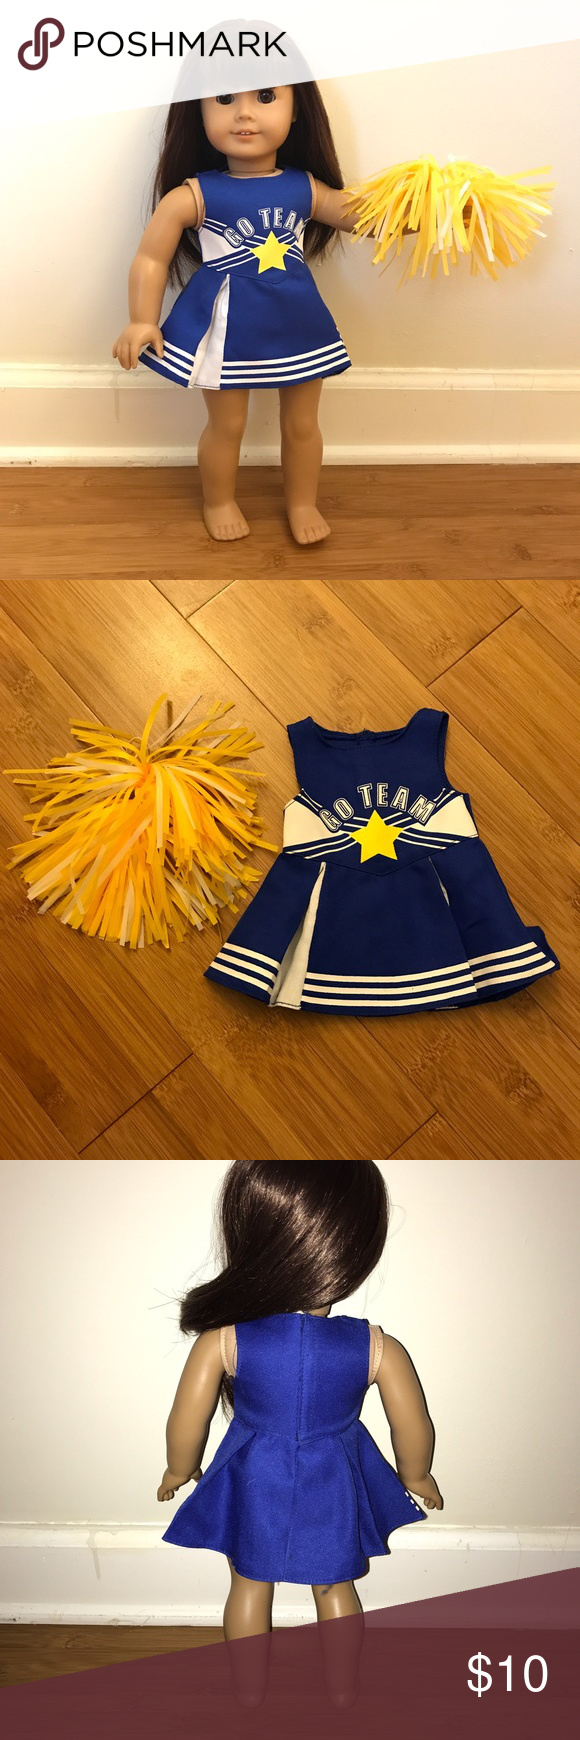 18 inch doll cheerleading outfit American girl 18 inch American girl doll cheerleading outfit. Originally purchased from Michaels from SF doll brand. Includes dress and Pom Pom. Selling from a pet free, smoke free home. Includes hanger. MAKE AN OFFER (brand is used for exposure) ⭐️ FOR LOWER ITEM PRICES AND SHIPPING PRICES BUY ON MY MERCARI! (shop.sherri) ⭐️ tags: Pink, American girl, our generation, clothes, accessories, 18 inch, hand sewn american girl Other #18inchcheerleaderclothes 1 #18inchcheerleaderclothes